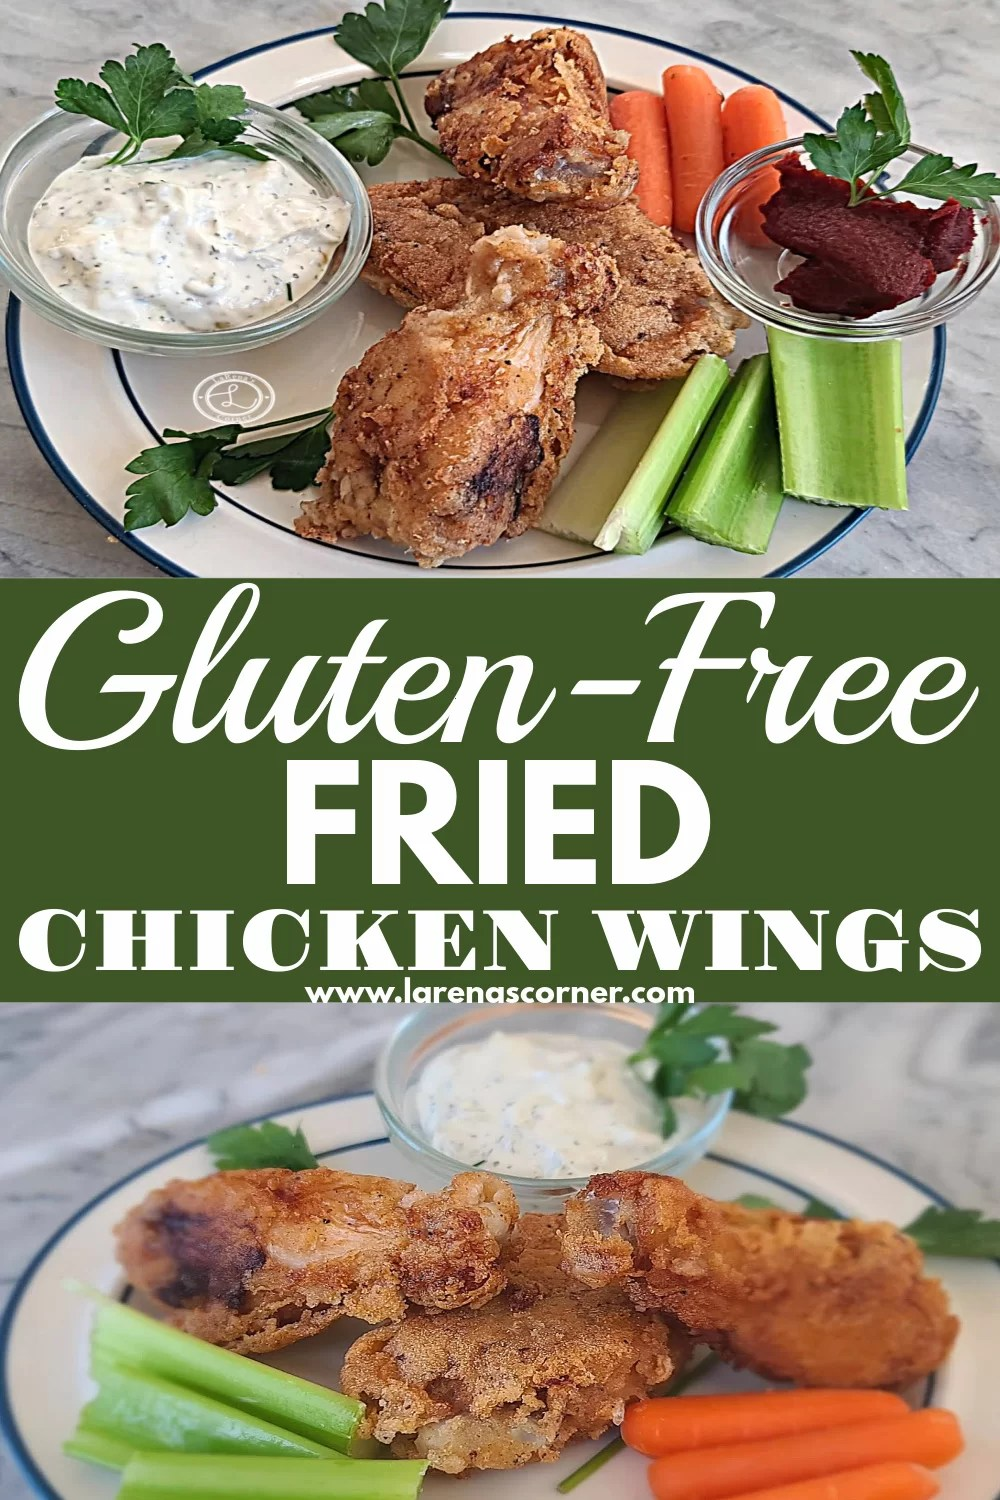 Gluten-Free Fried Chicken Wings. 2 pictures of plates of chicken wings with carrots, celery, with ranch ,and BBQ dip.